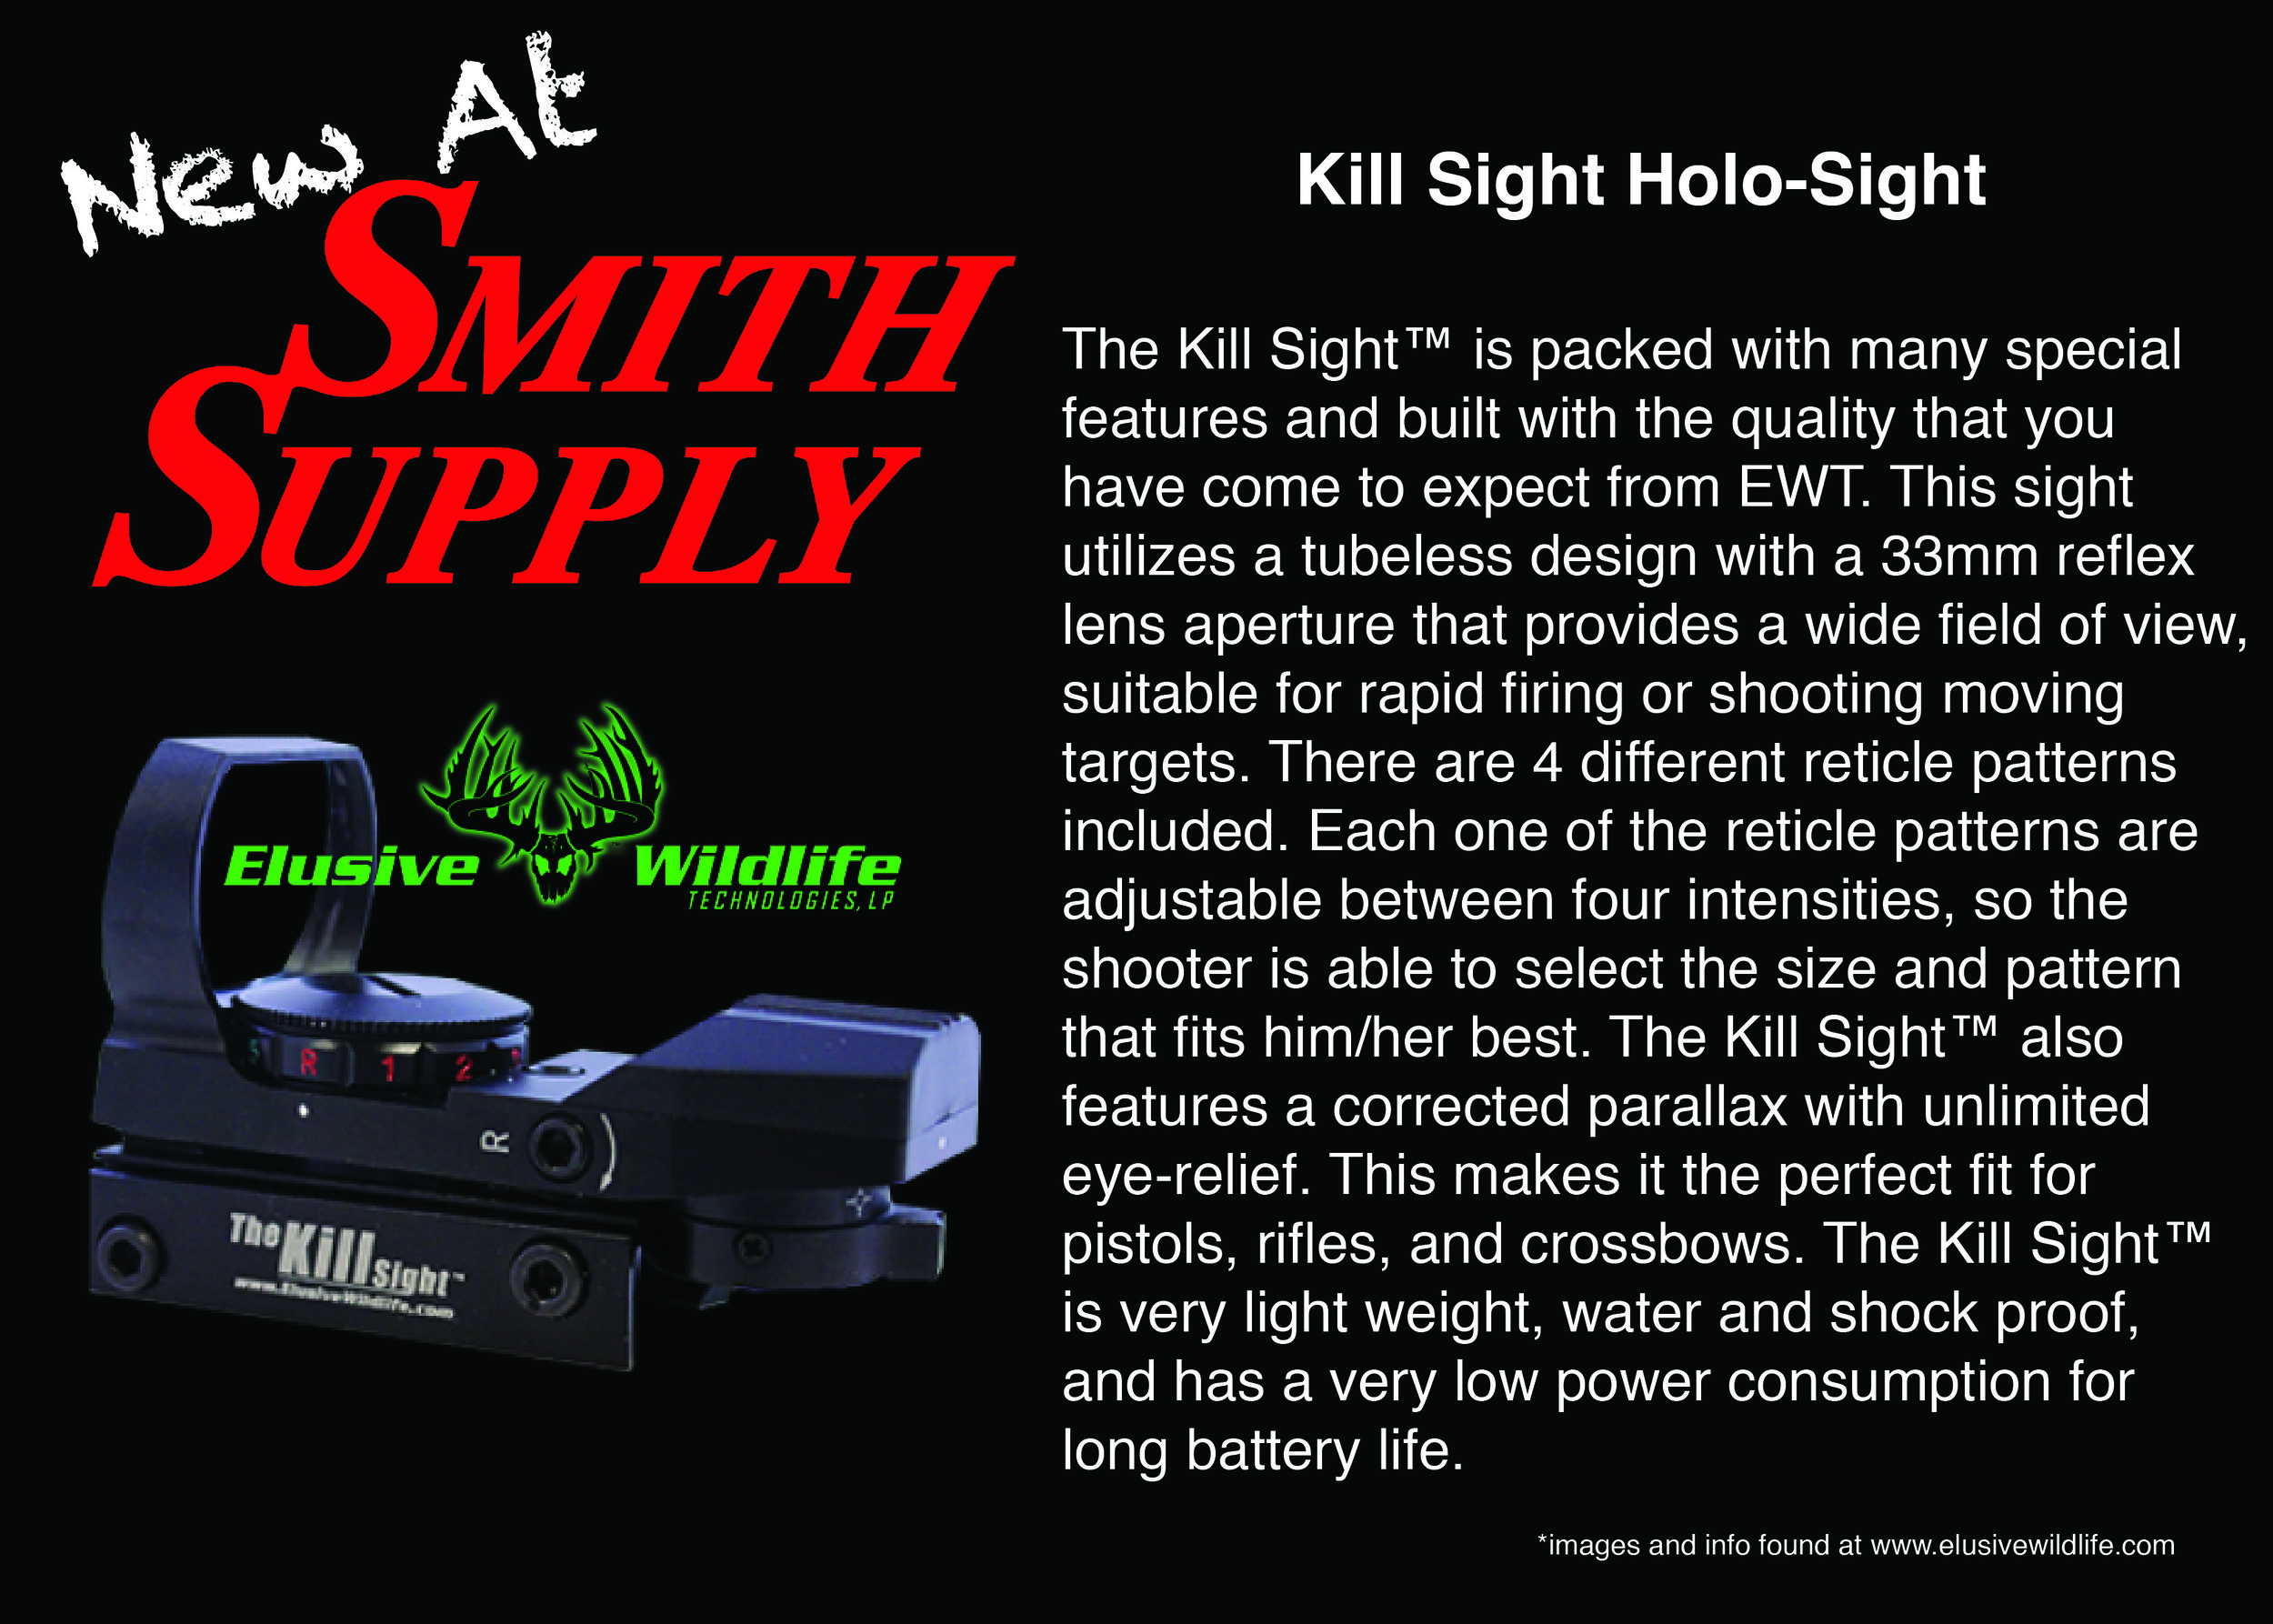 Smith Supply now offers a new Elusive Wildlife Sight. Get more information from a Salesperson.